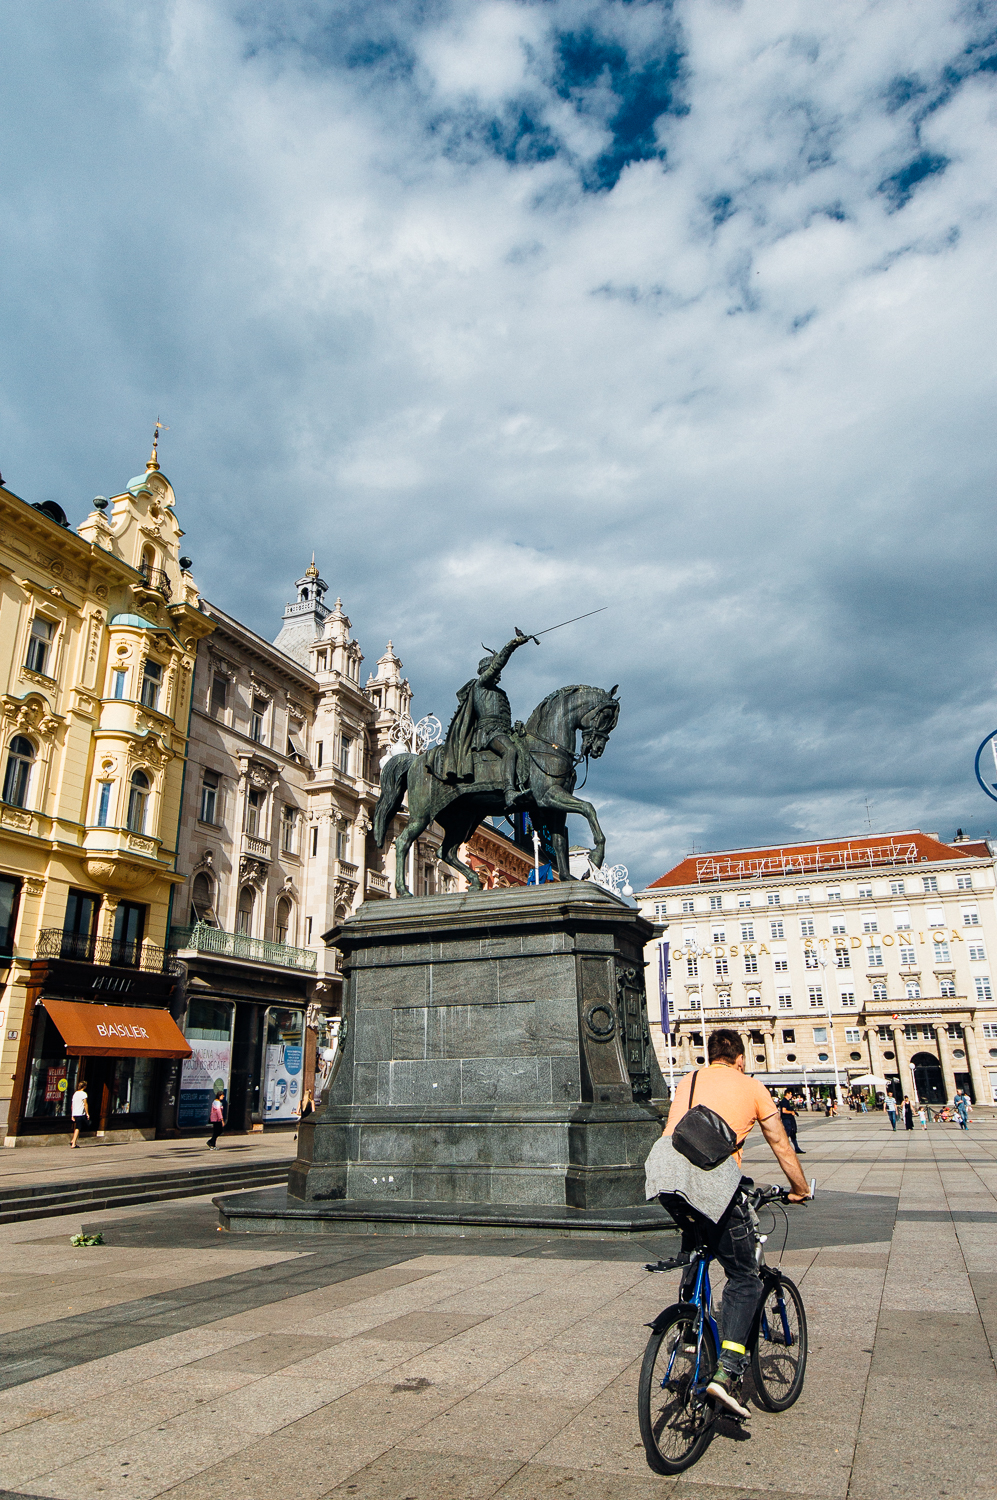 Meet Ban Josip Jelacic--a famous and successful army general for Croatia in the mid-19th century. He sits in the middle of the square that is named after him.